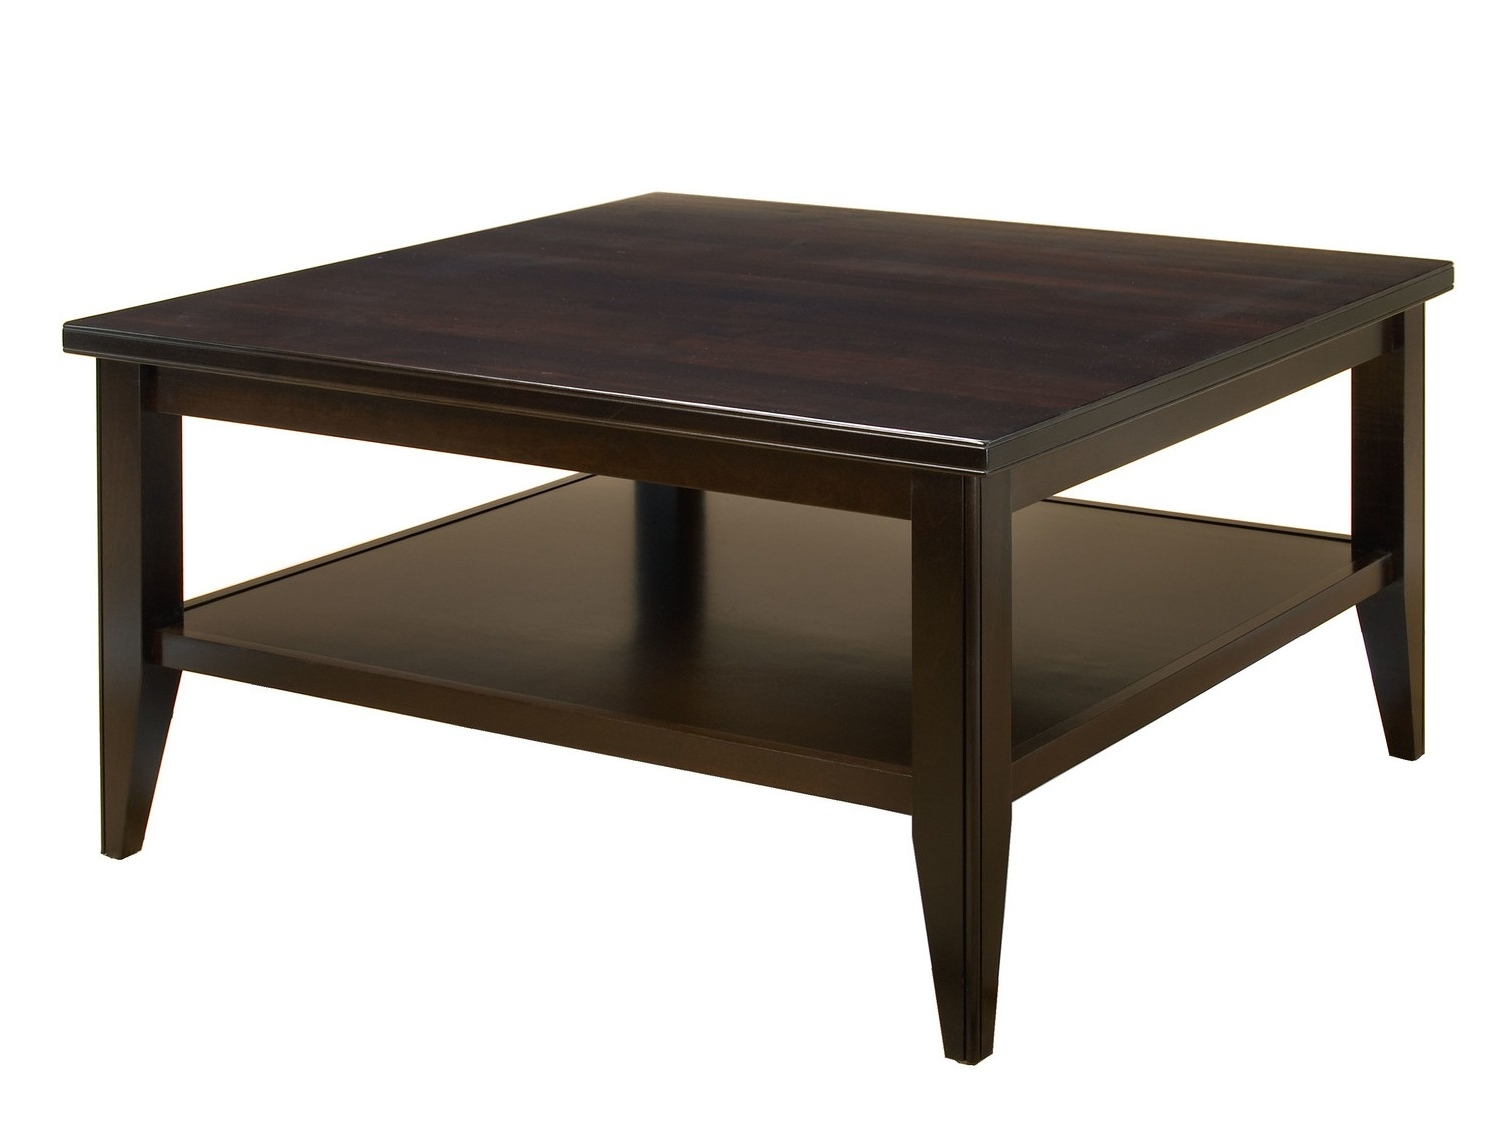 Elegant Traditional Coffee Table With Coffee Table Beautiful Of With Regard To Latest Traditional Coffee Tables (Gallery 11 of 20)